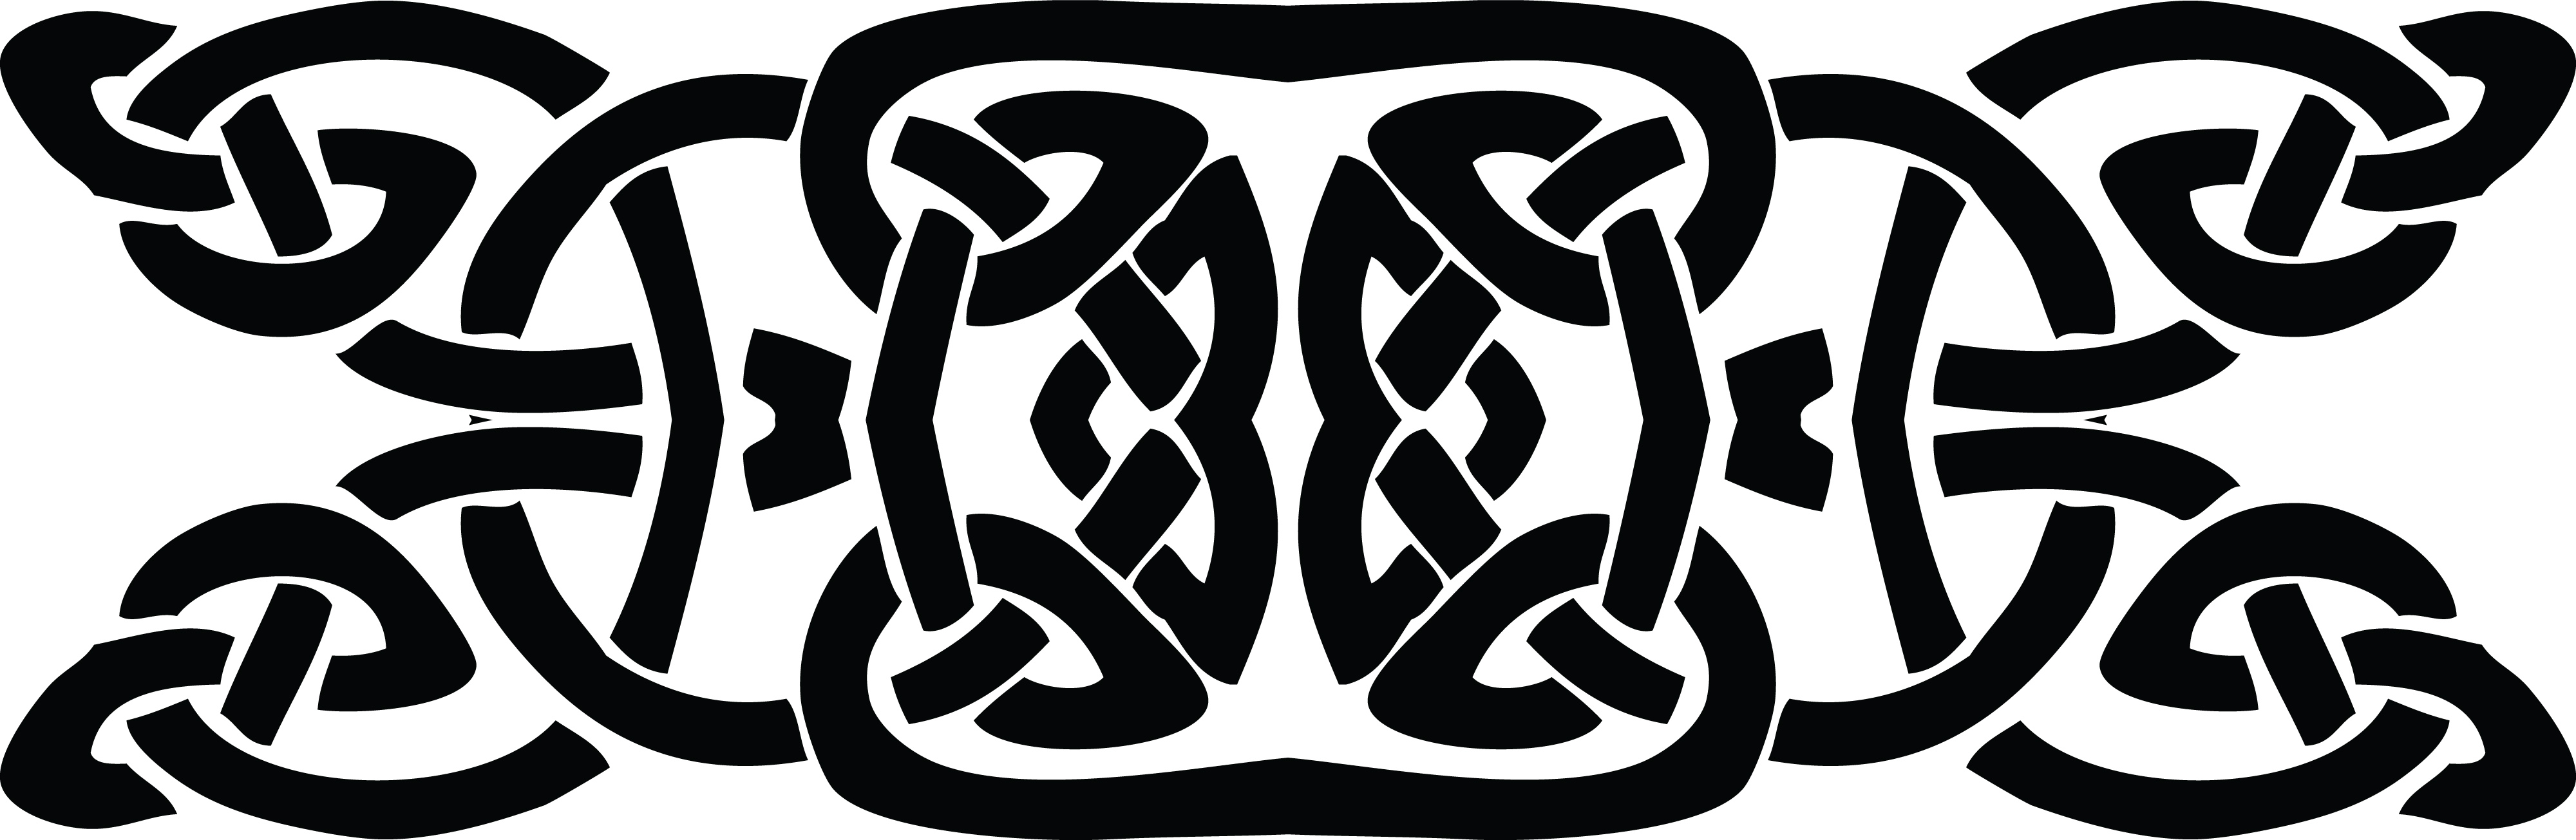 Celtic Knot clipart black and white #5